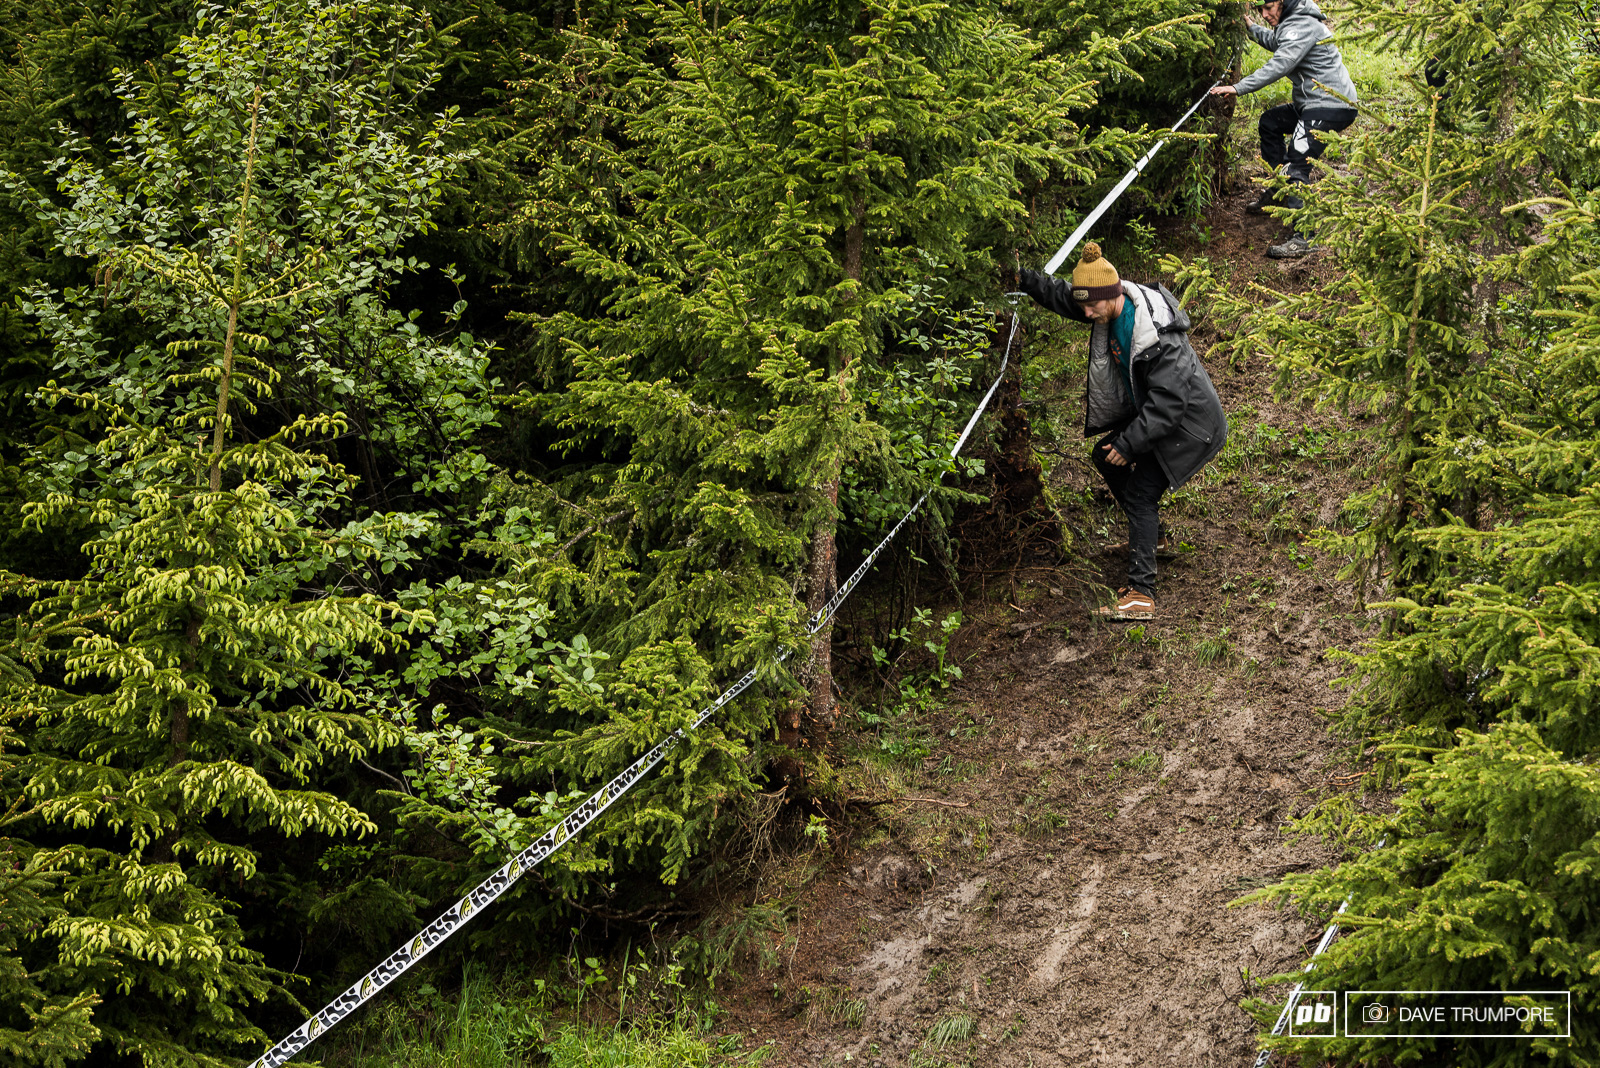 Just a bit steep as the track transition from open slope to trees.